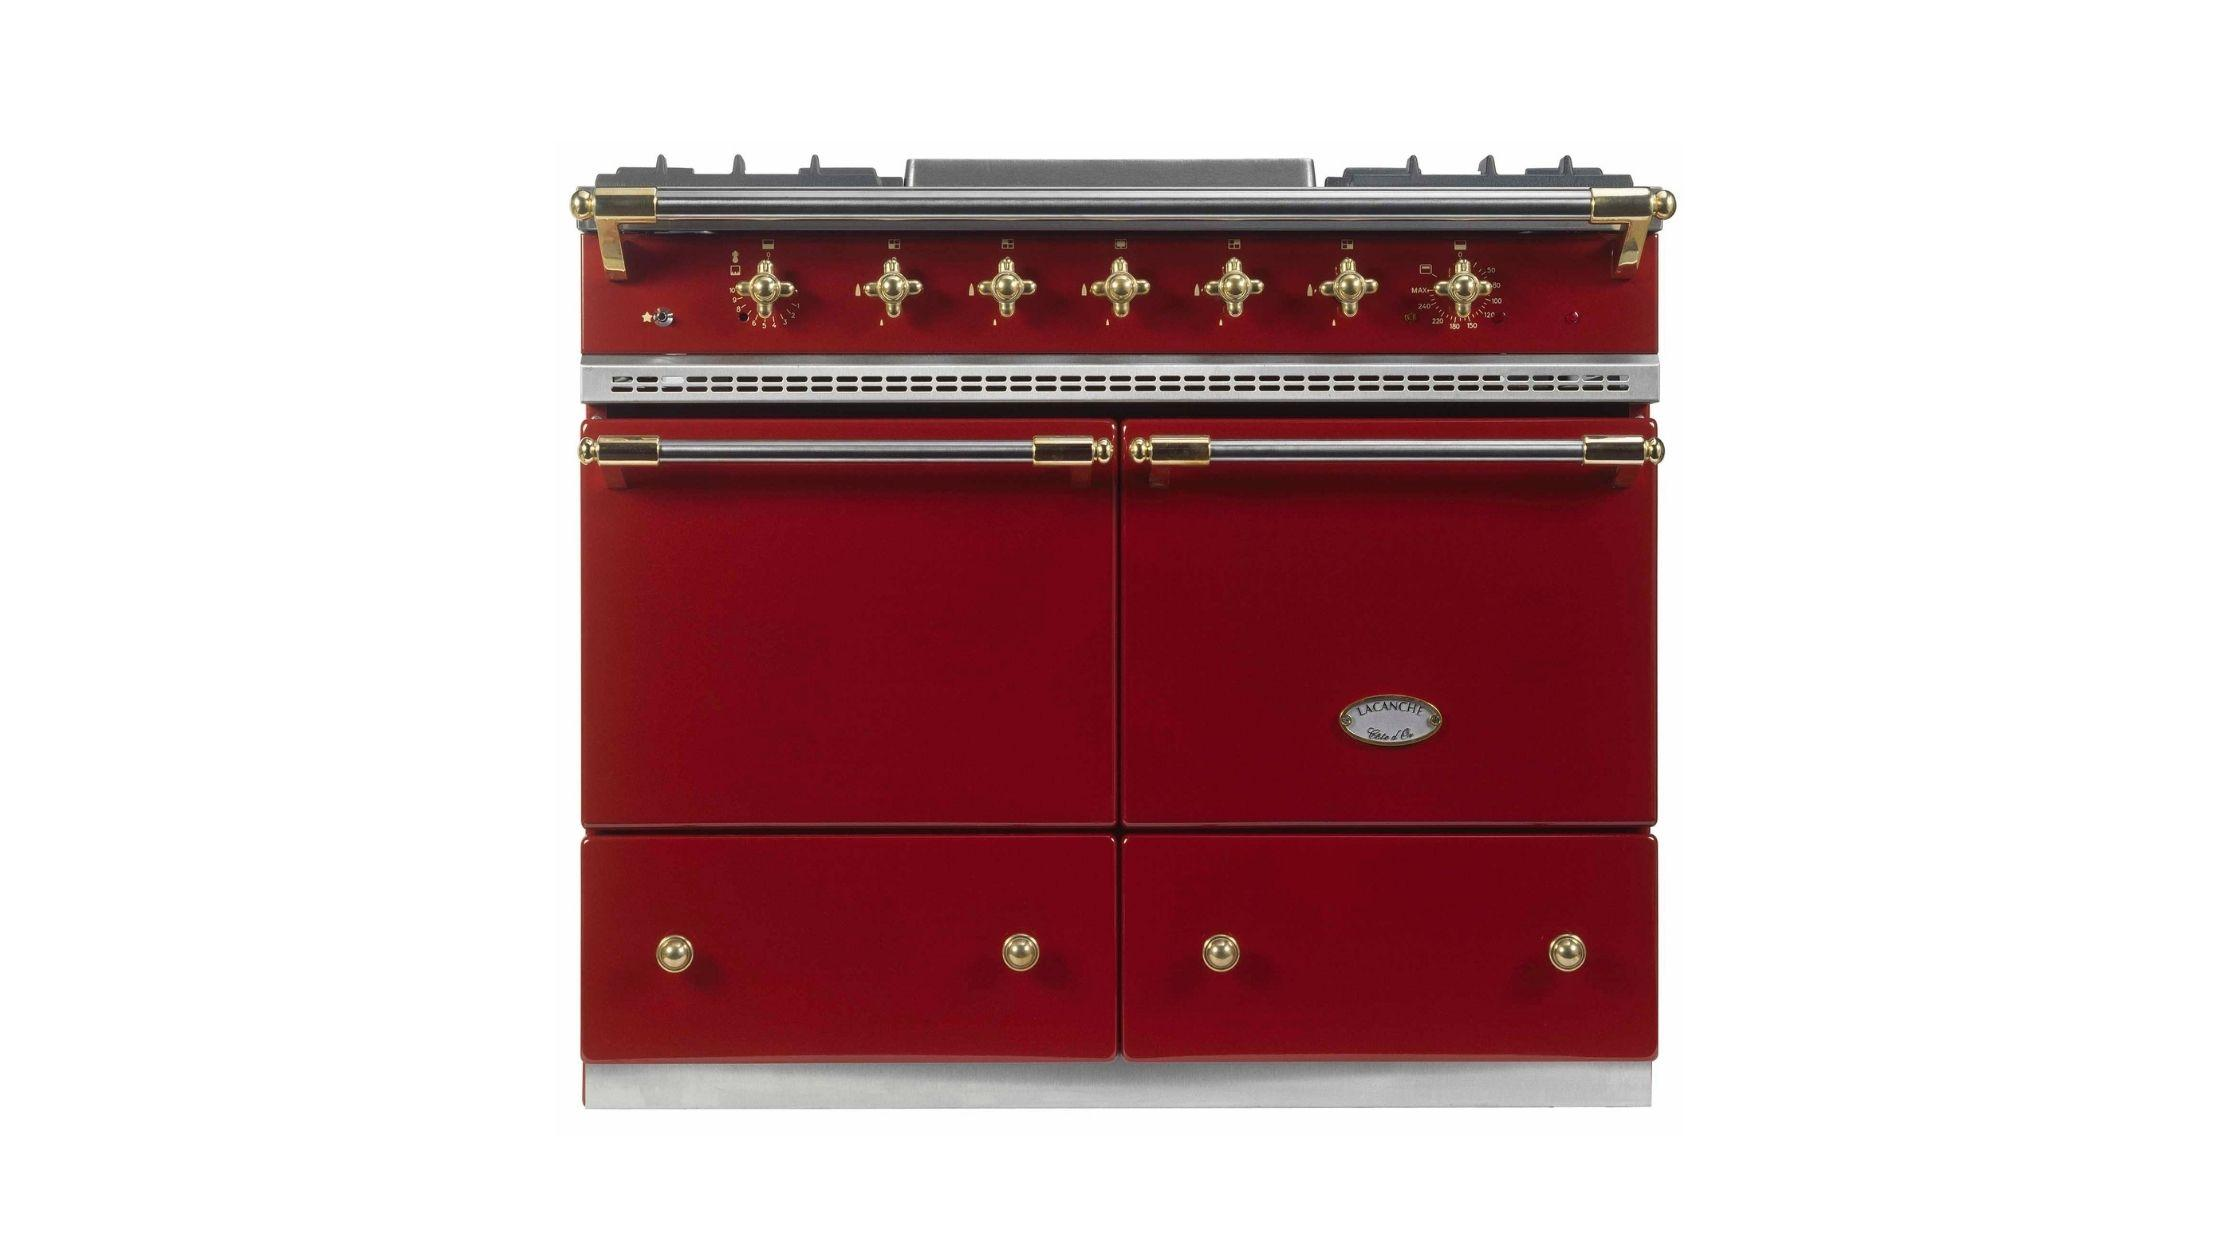 Cluny in Burgundy Red and Brass Trim